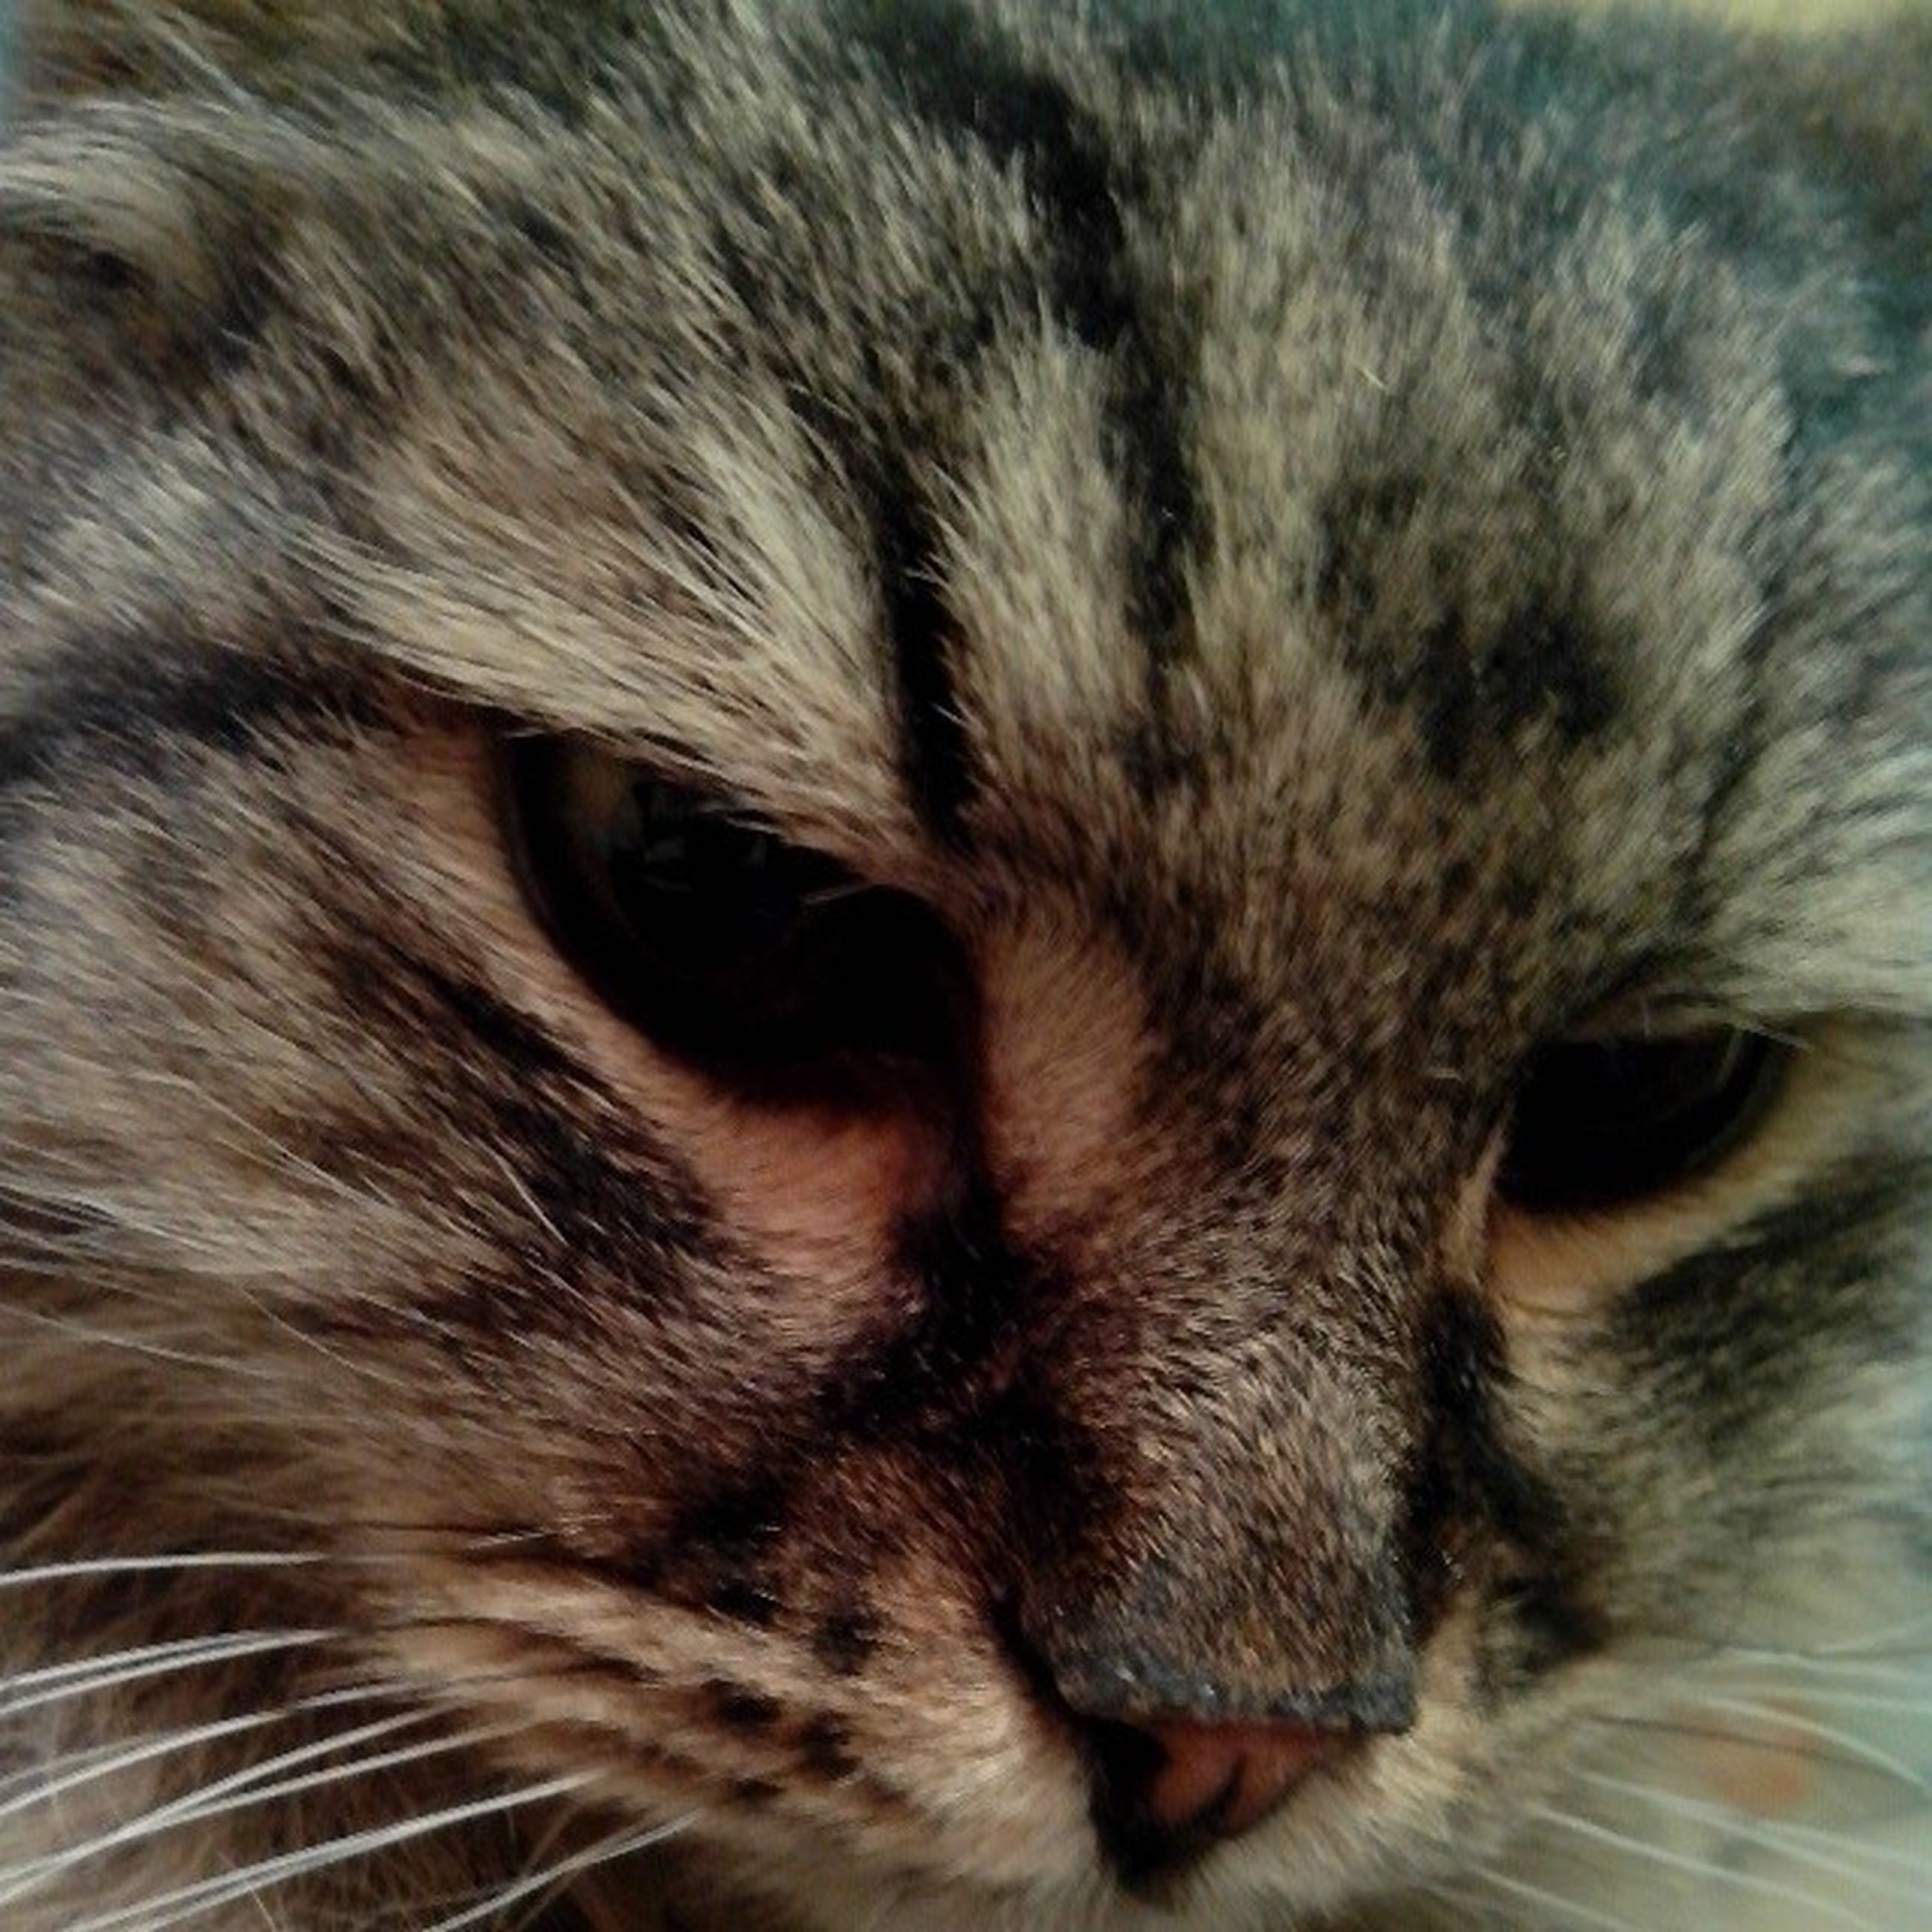 domestic cat, animal themes, cat, domestic animals, one animal, feline, pets, mammal, whisker, animal head, close-up, animal body part, animal eye, indoors, portrait, looking at camera, animal hair, part of, full frame, no people